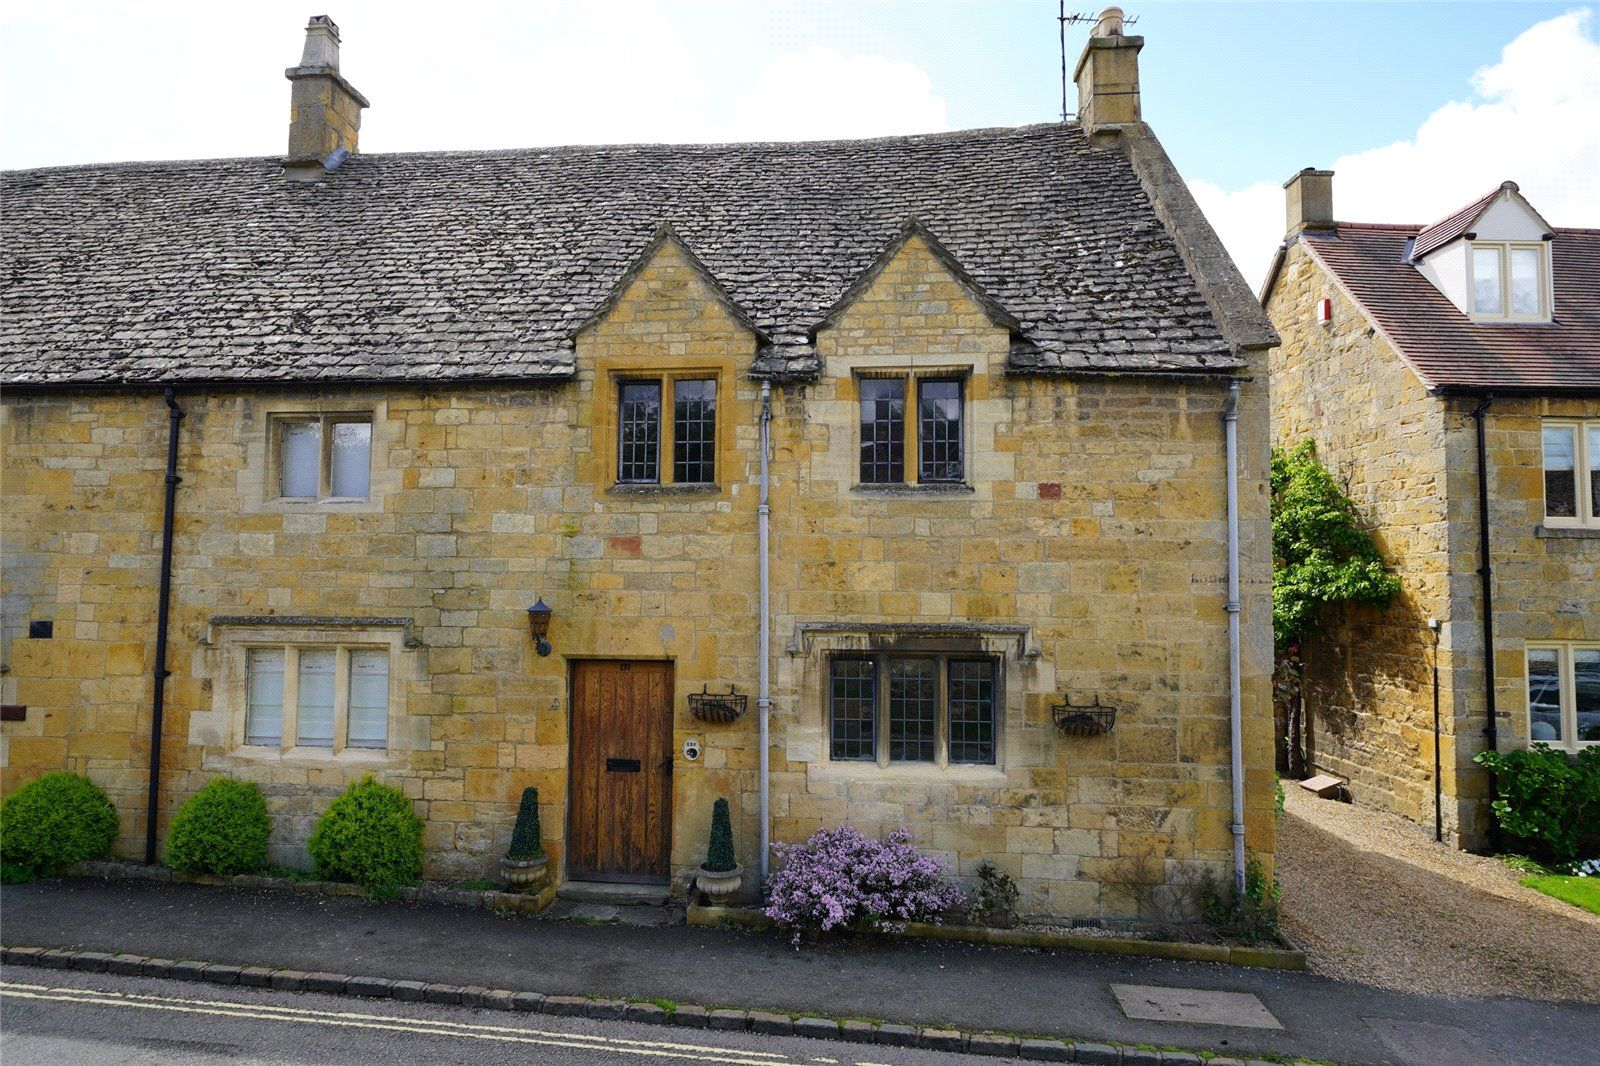 Property photo 1 of 9. 131 High Street